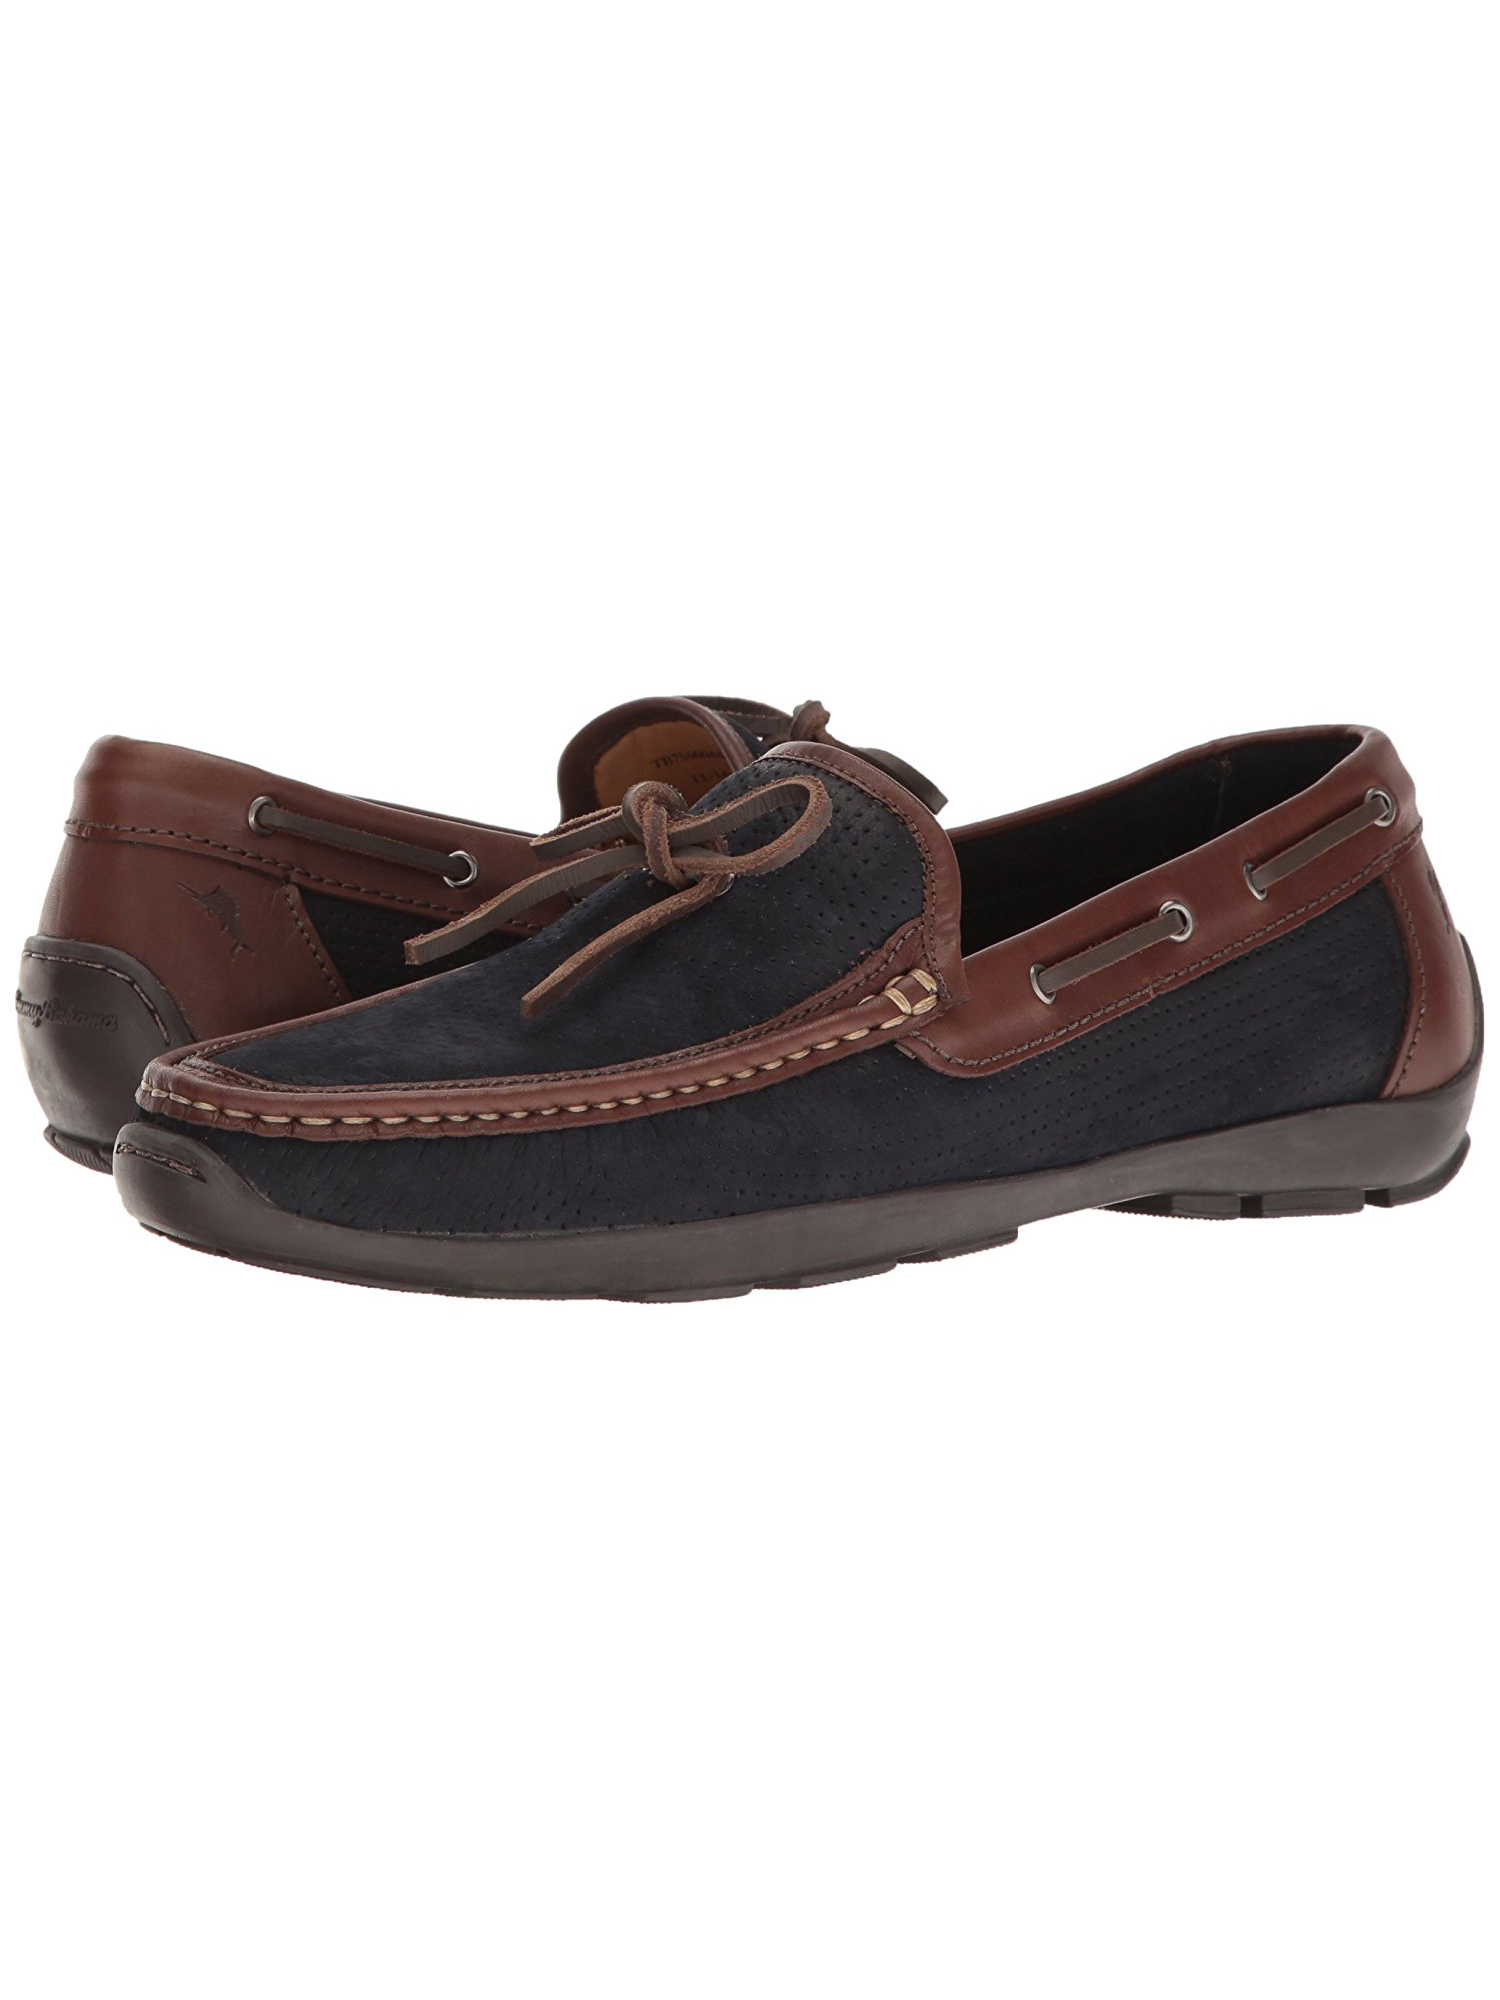 30fc81850380 Tommy Bahama Men s Odinn Wide Width Slip-on Moccasin Boat Shoe